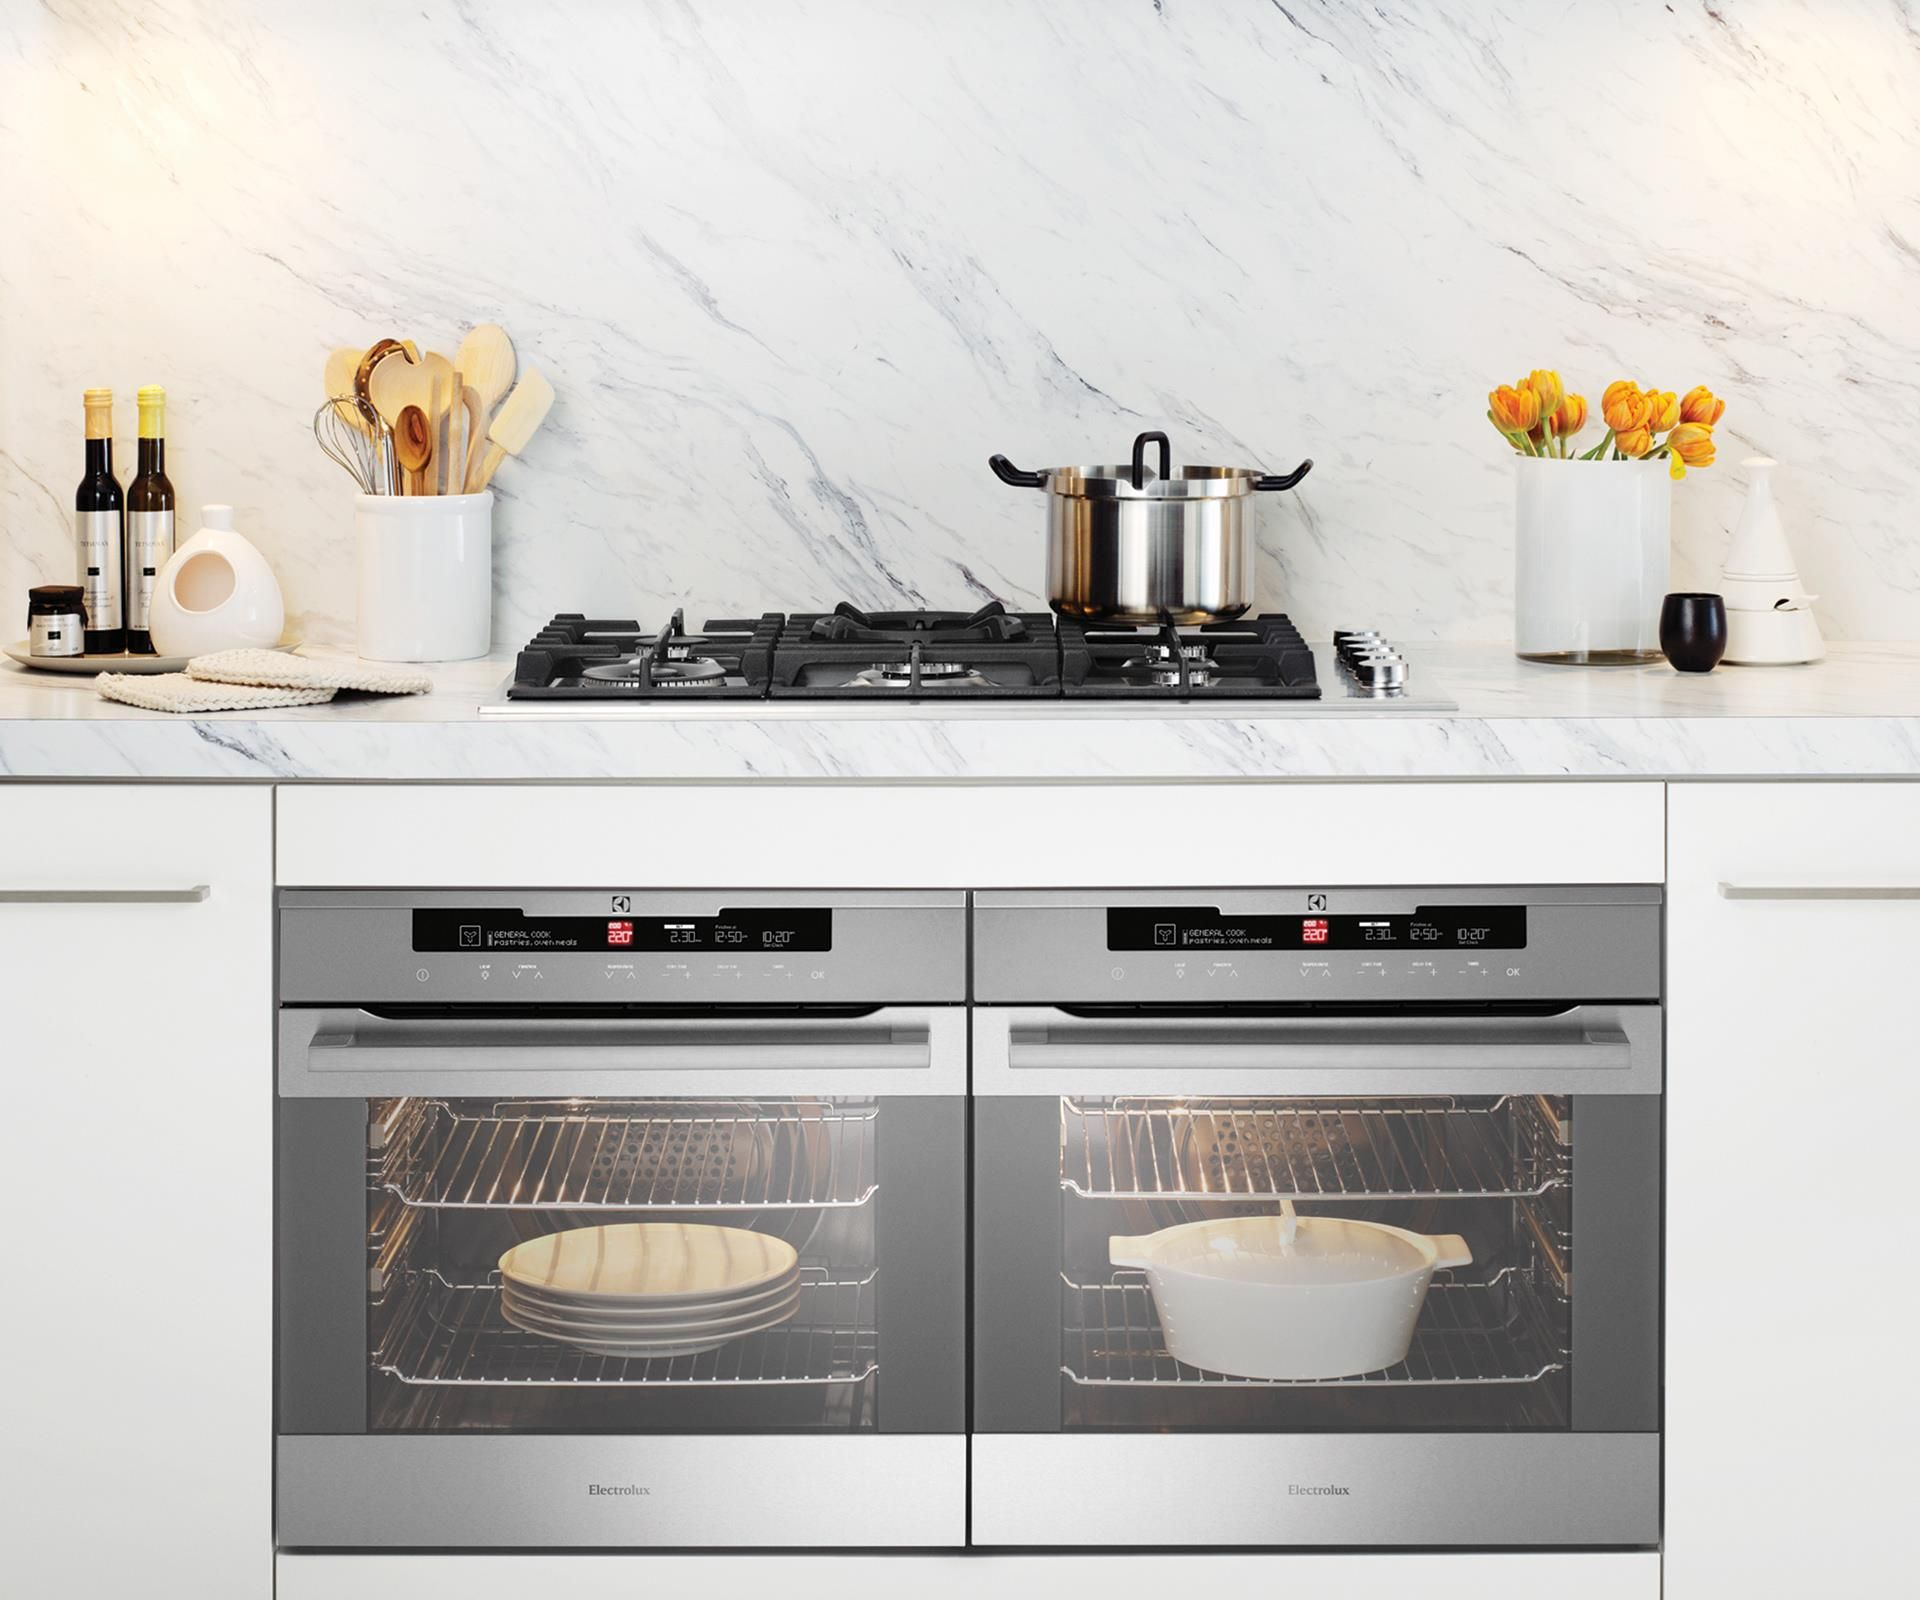 From Budget To Luxe And Freestanding Ovens With Built In Induction Cooktops,  To Compact